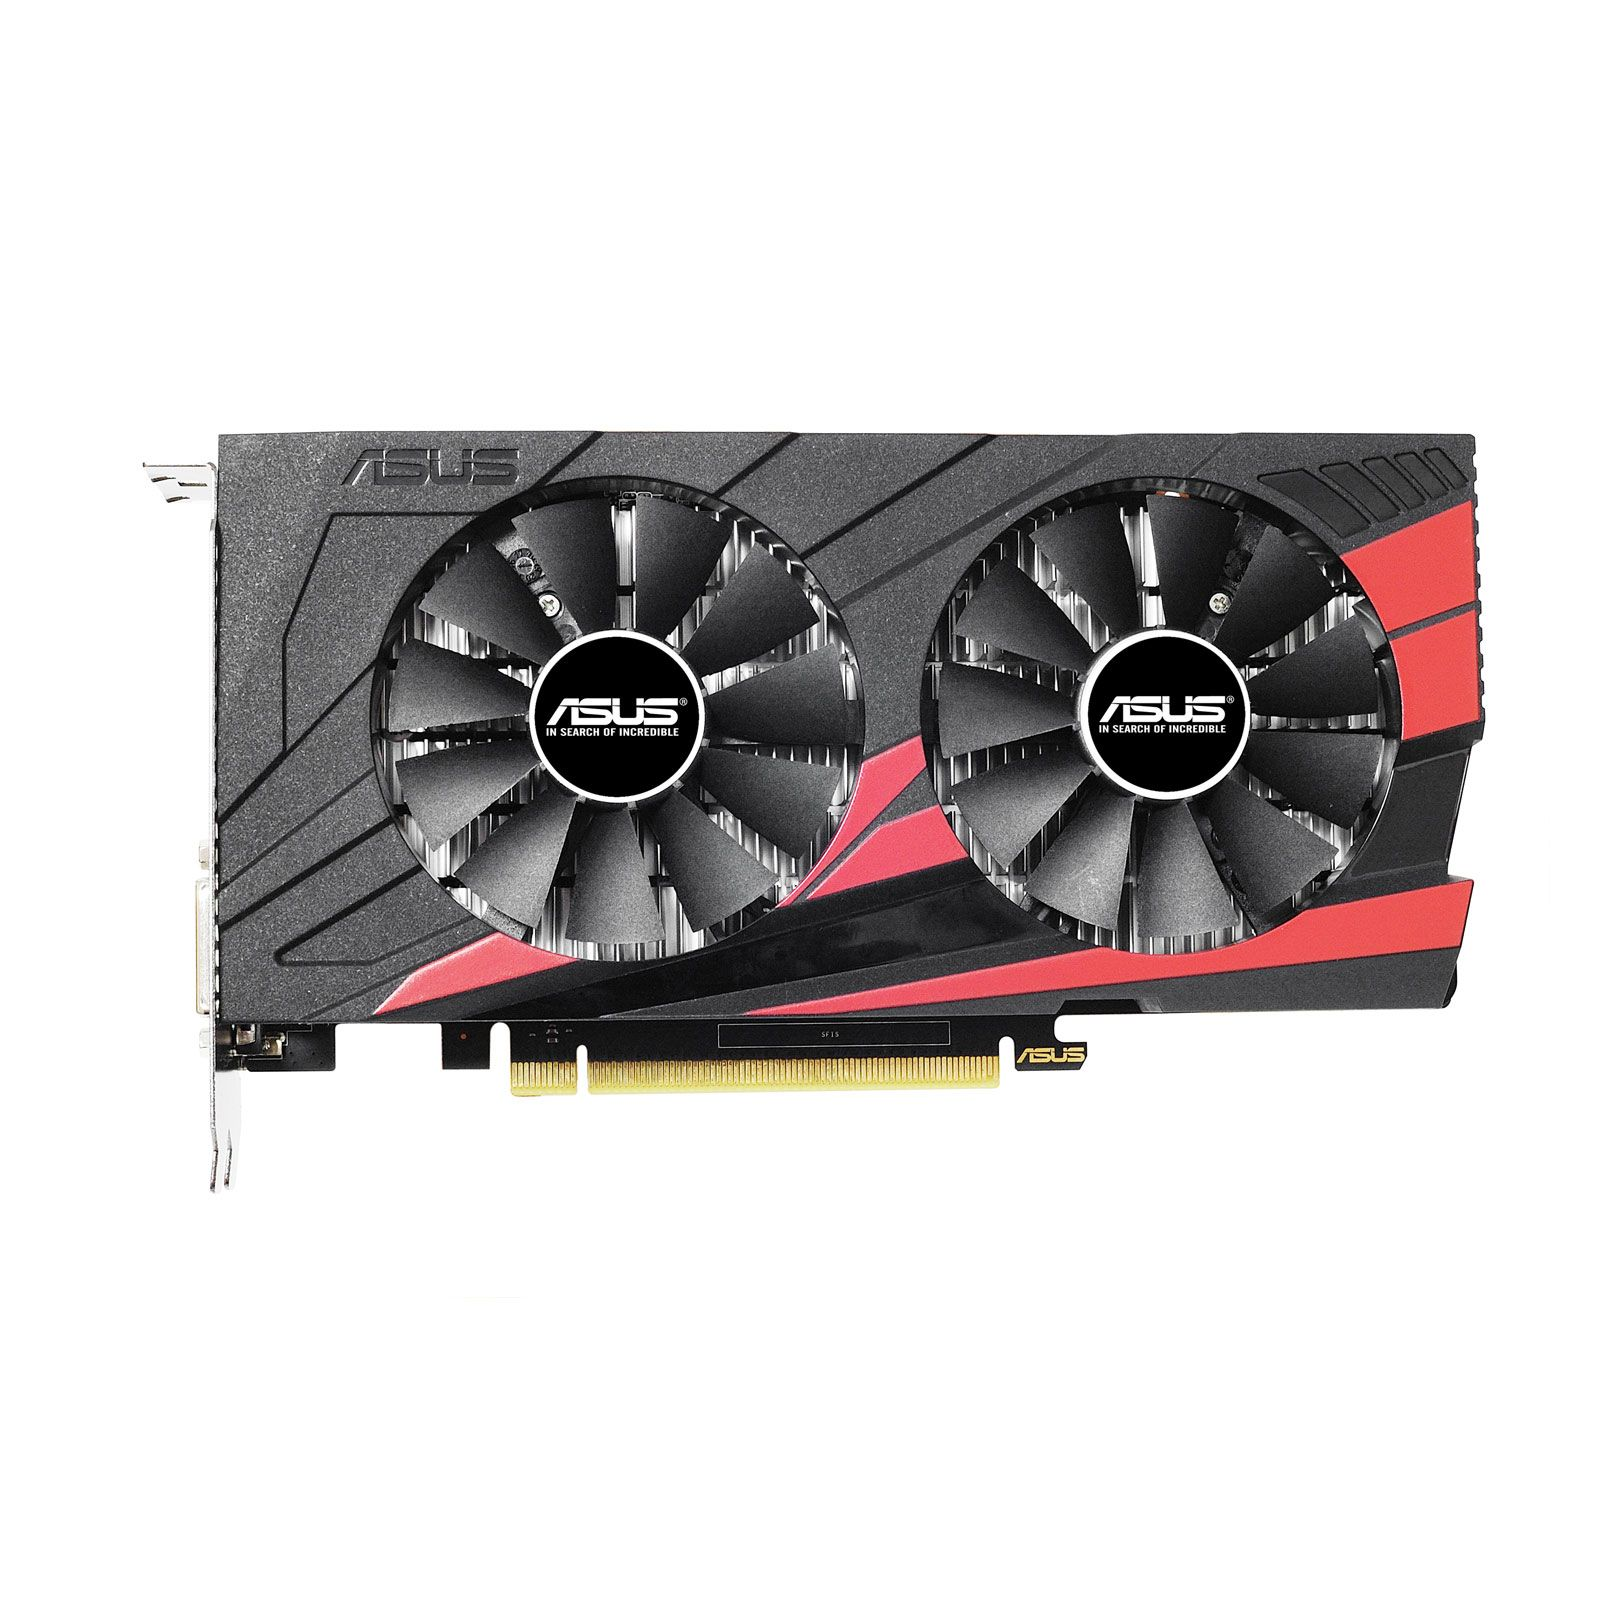 Asus Geforce Gtx 1050 Ex Gtx1050 2g Disponible Ici Entierement